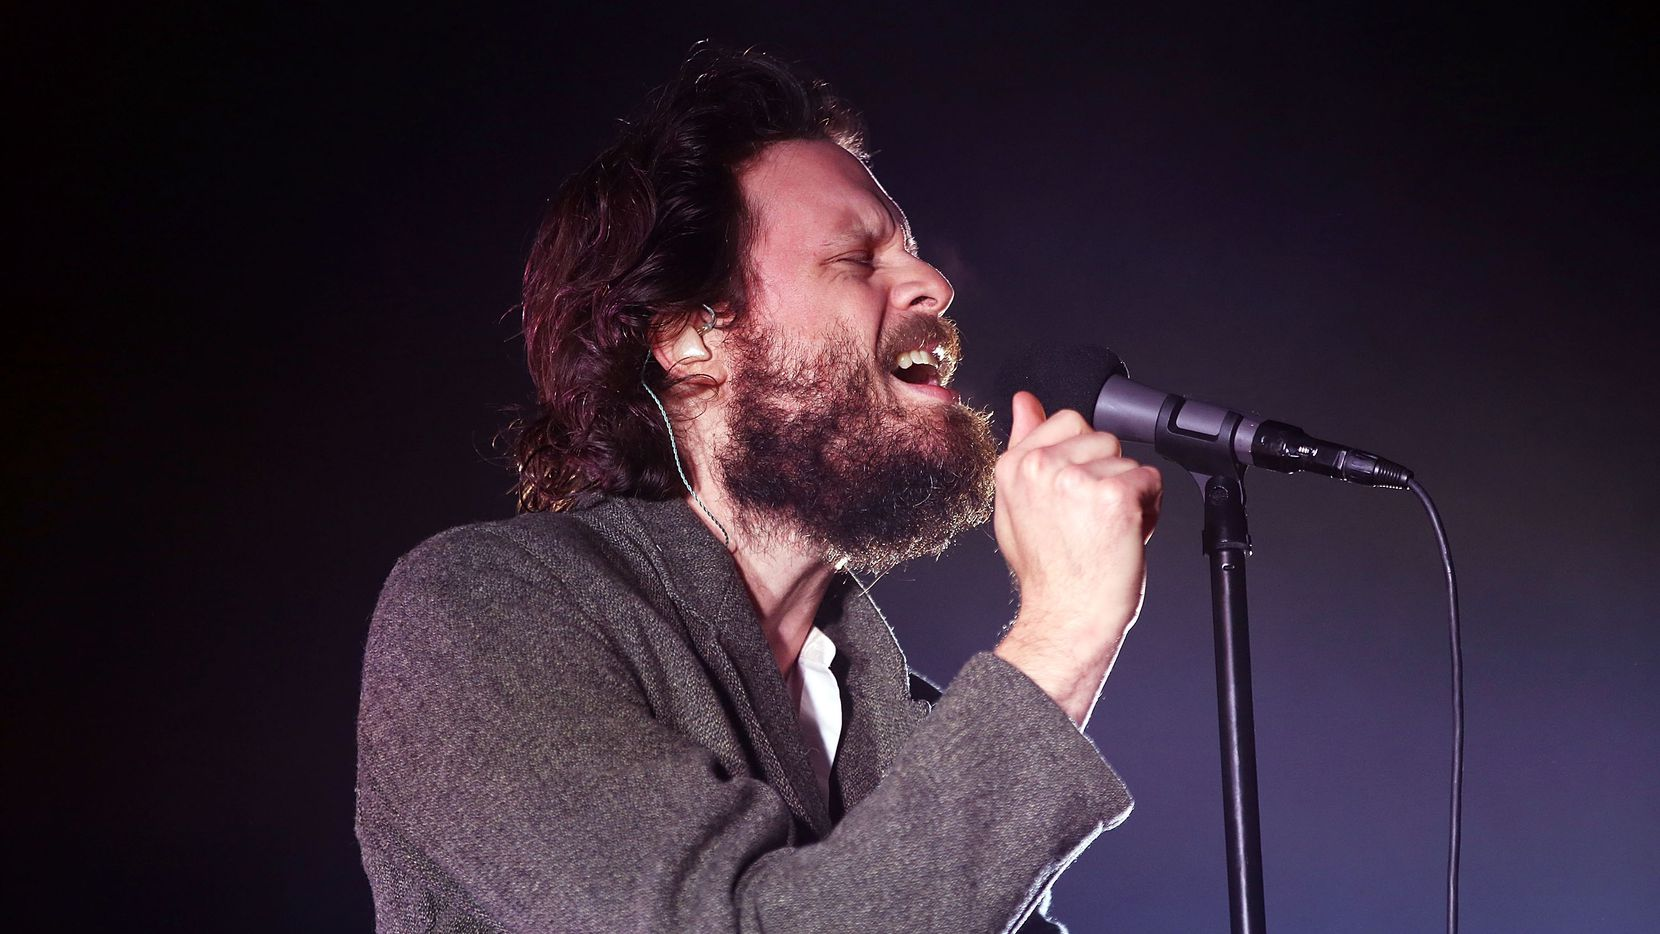 Performers at UtopiaFest in the Texas Hill Country have included Father John Misty (pictured), Dr. John, Patty Griffin and Dawes. This year's lineup hasn't been announced.